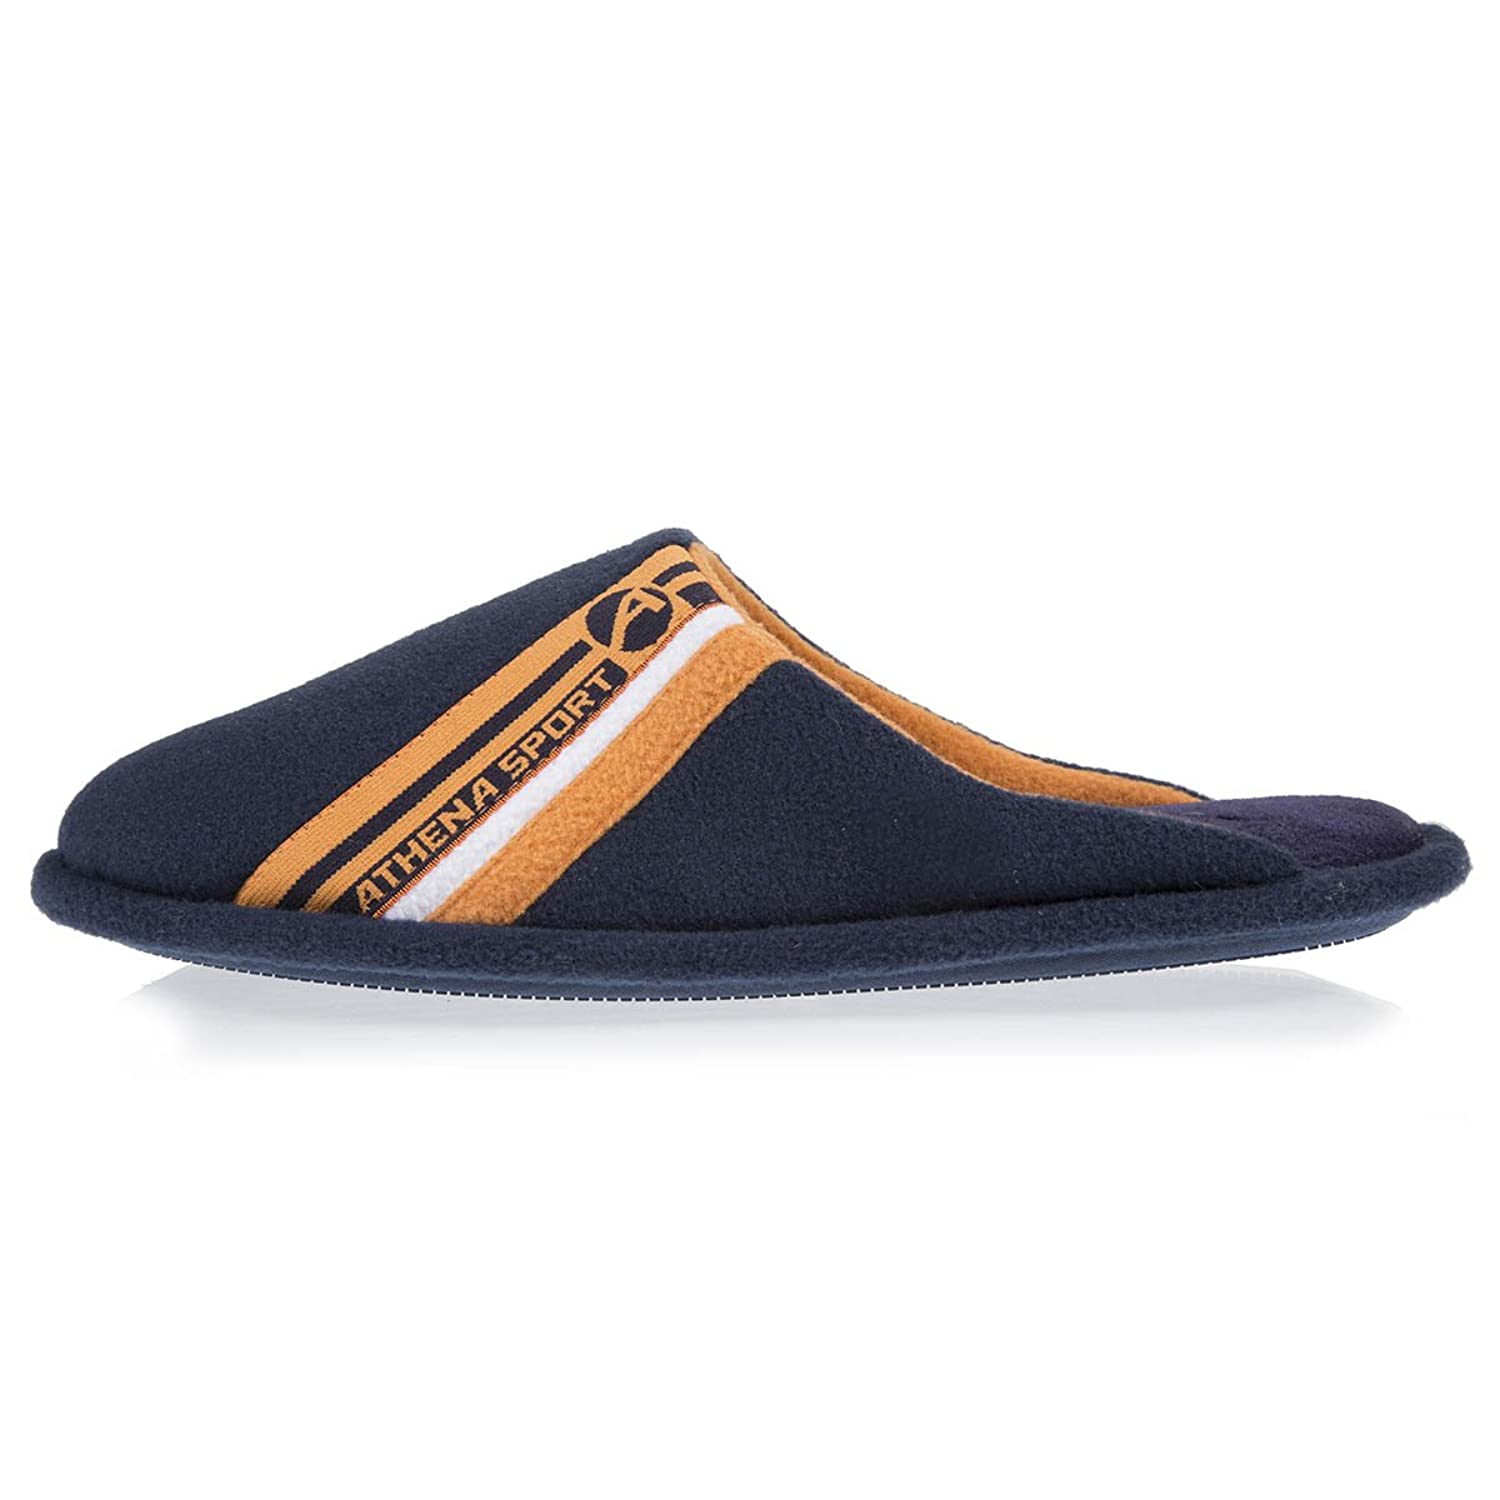 Chaussons ATHENA mules homme sportswear